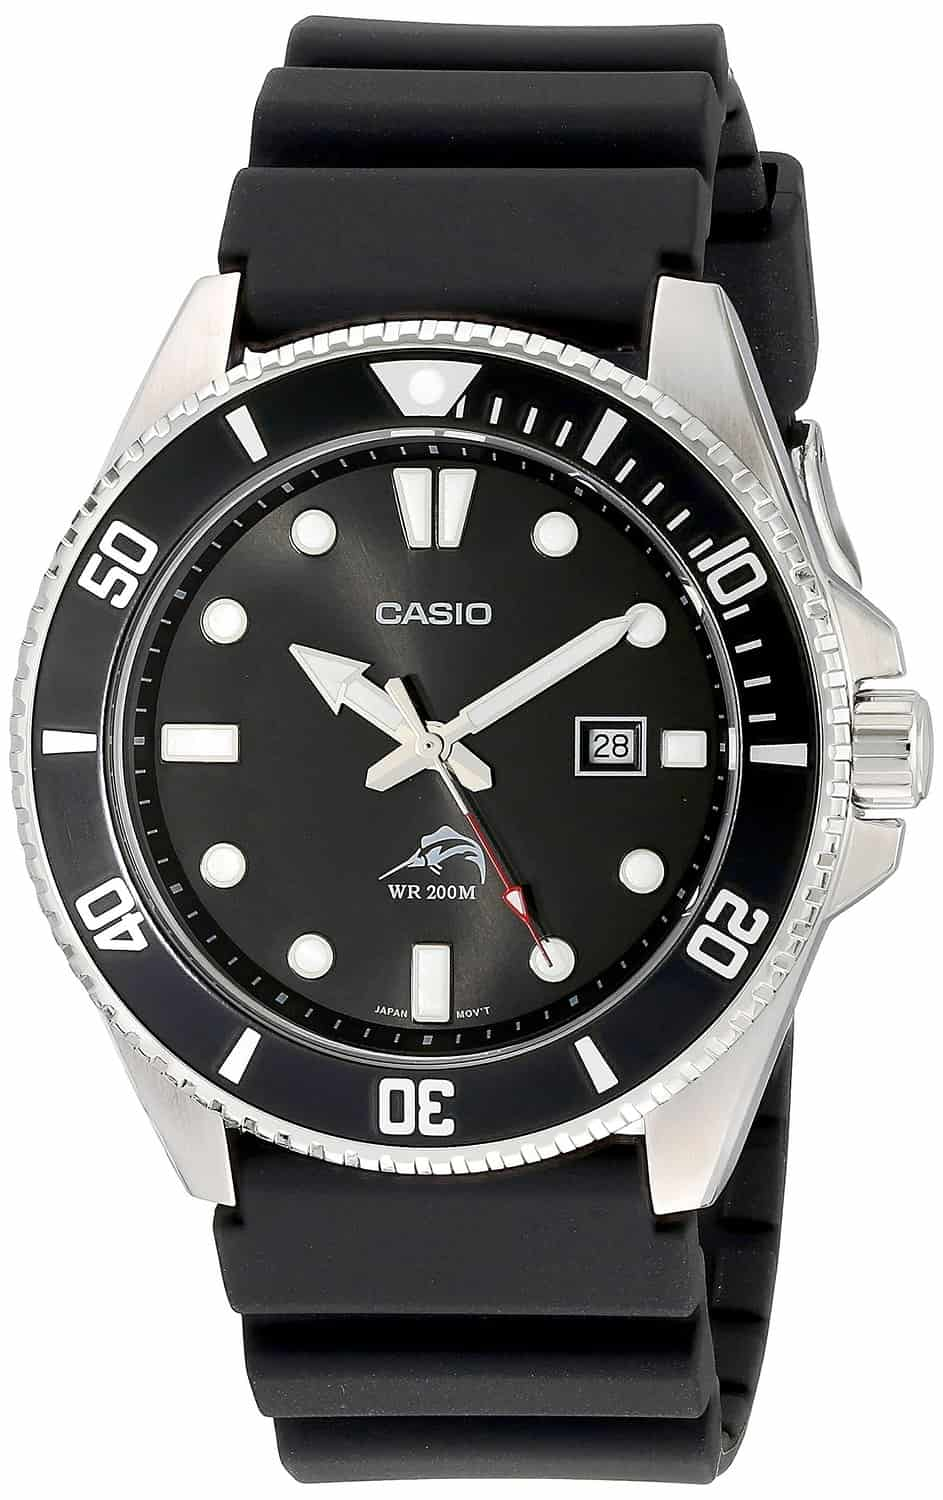 diving are s scuba dive why cool so gracious good watches blog check